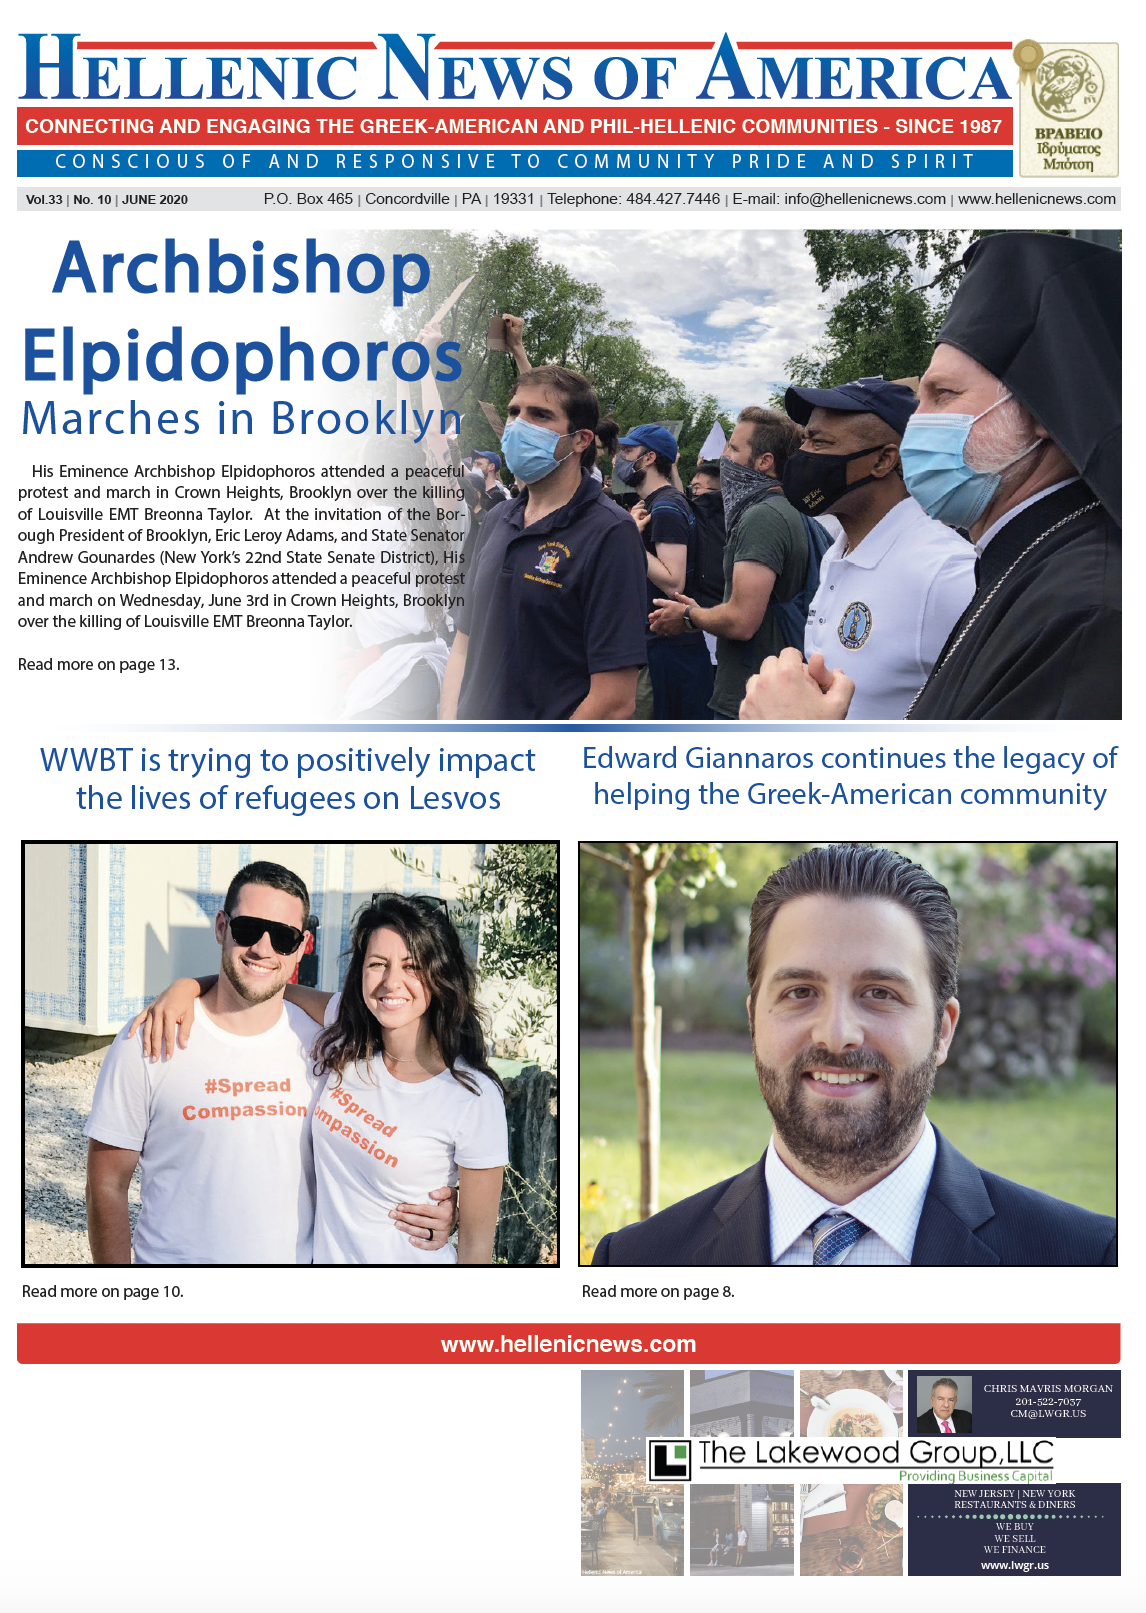 Hellenic-News-of-America-June-2020-Cover